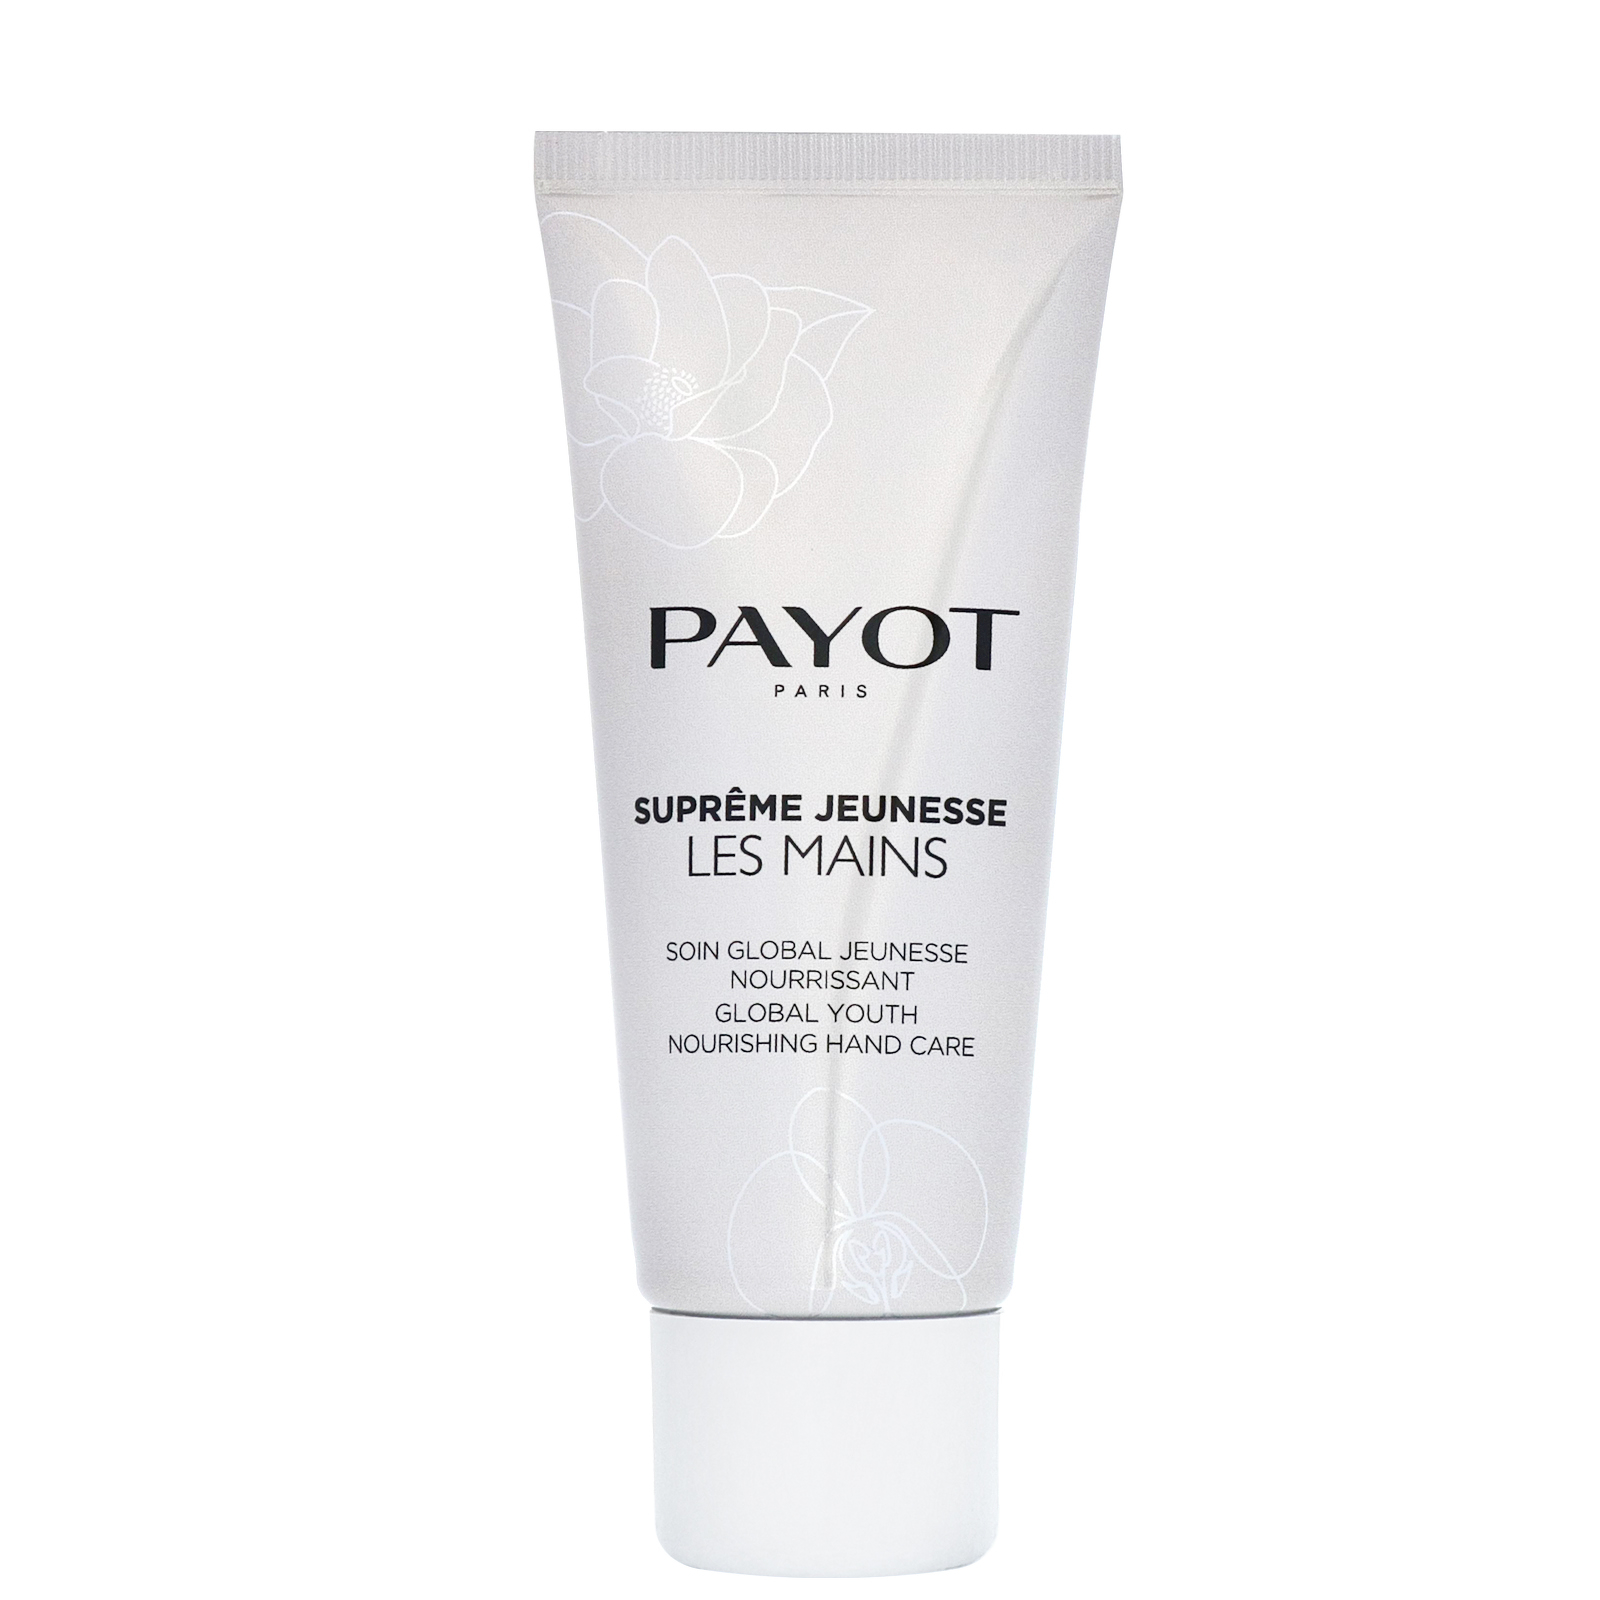 Payot Paris Supreme Jeunesse Les Mains: Global Youth Nourishing Hand Care 50ml